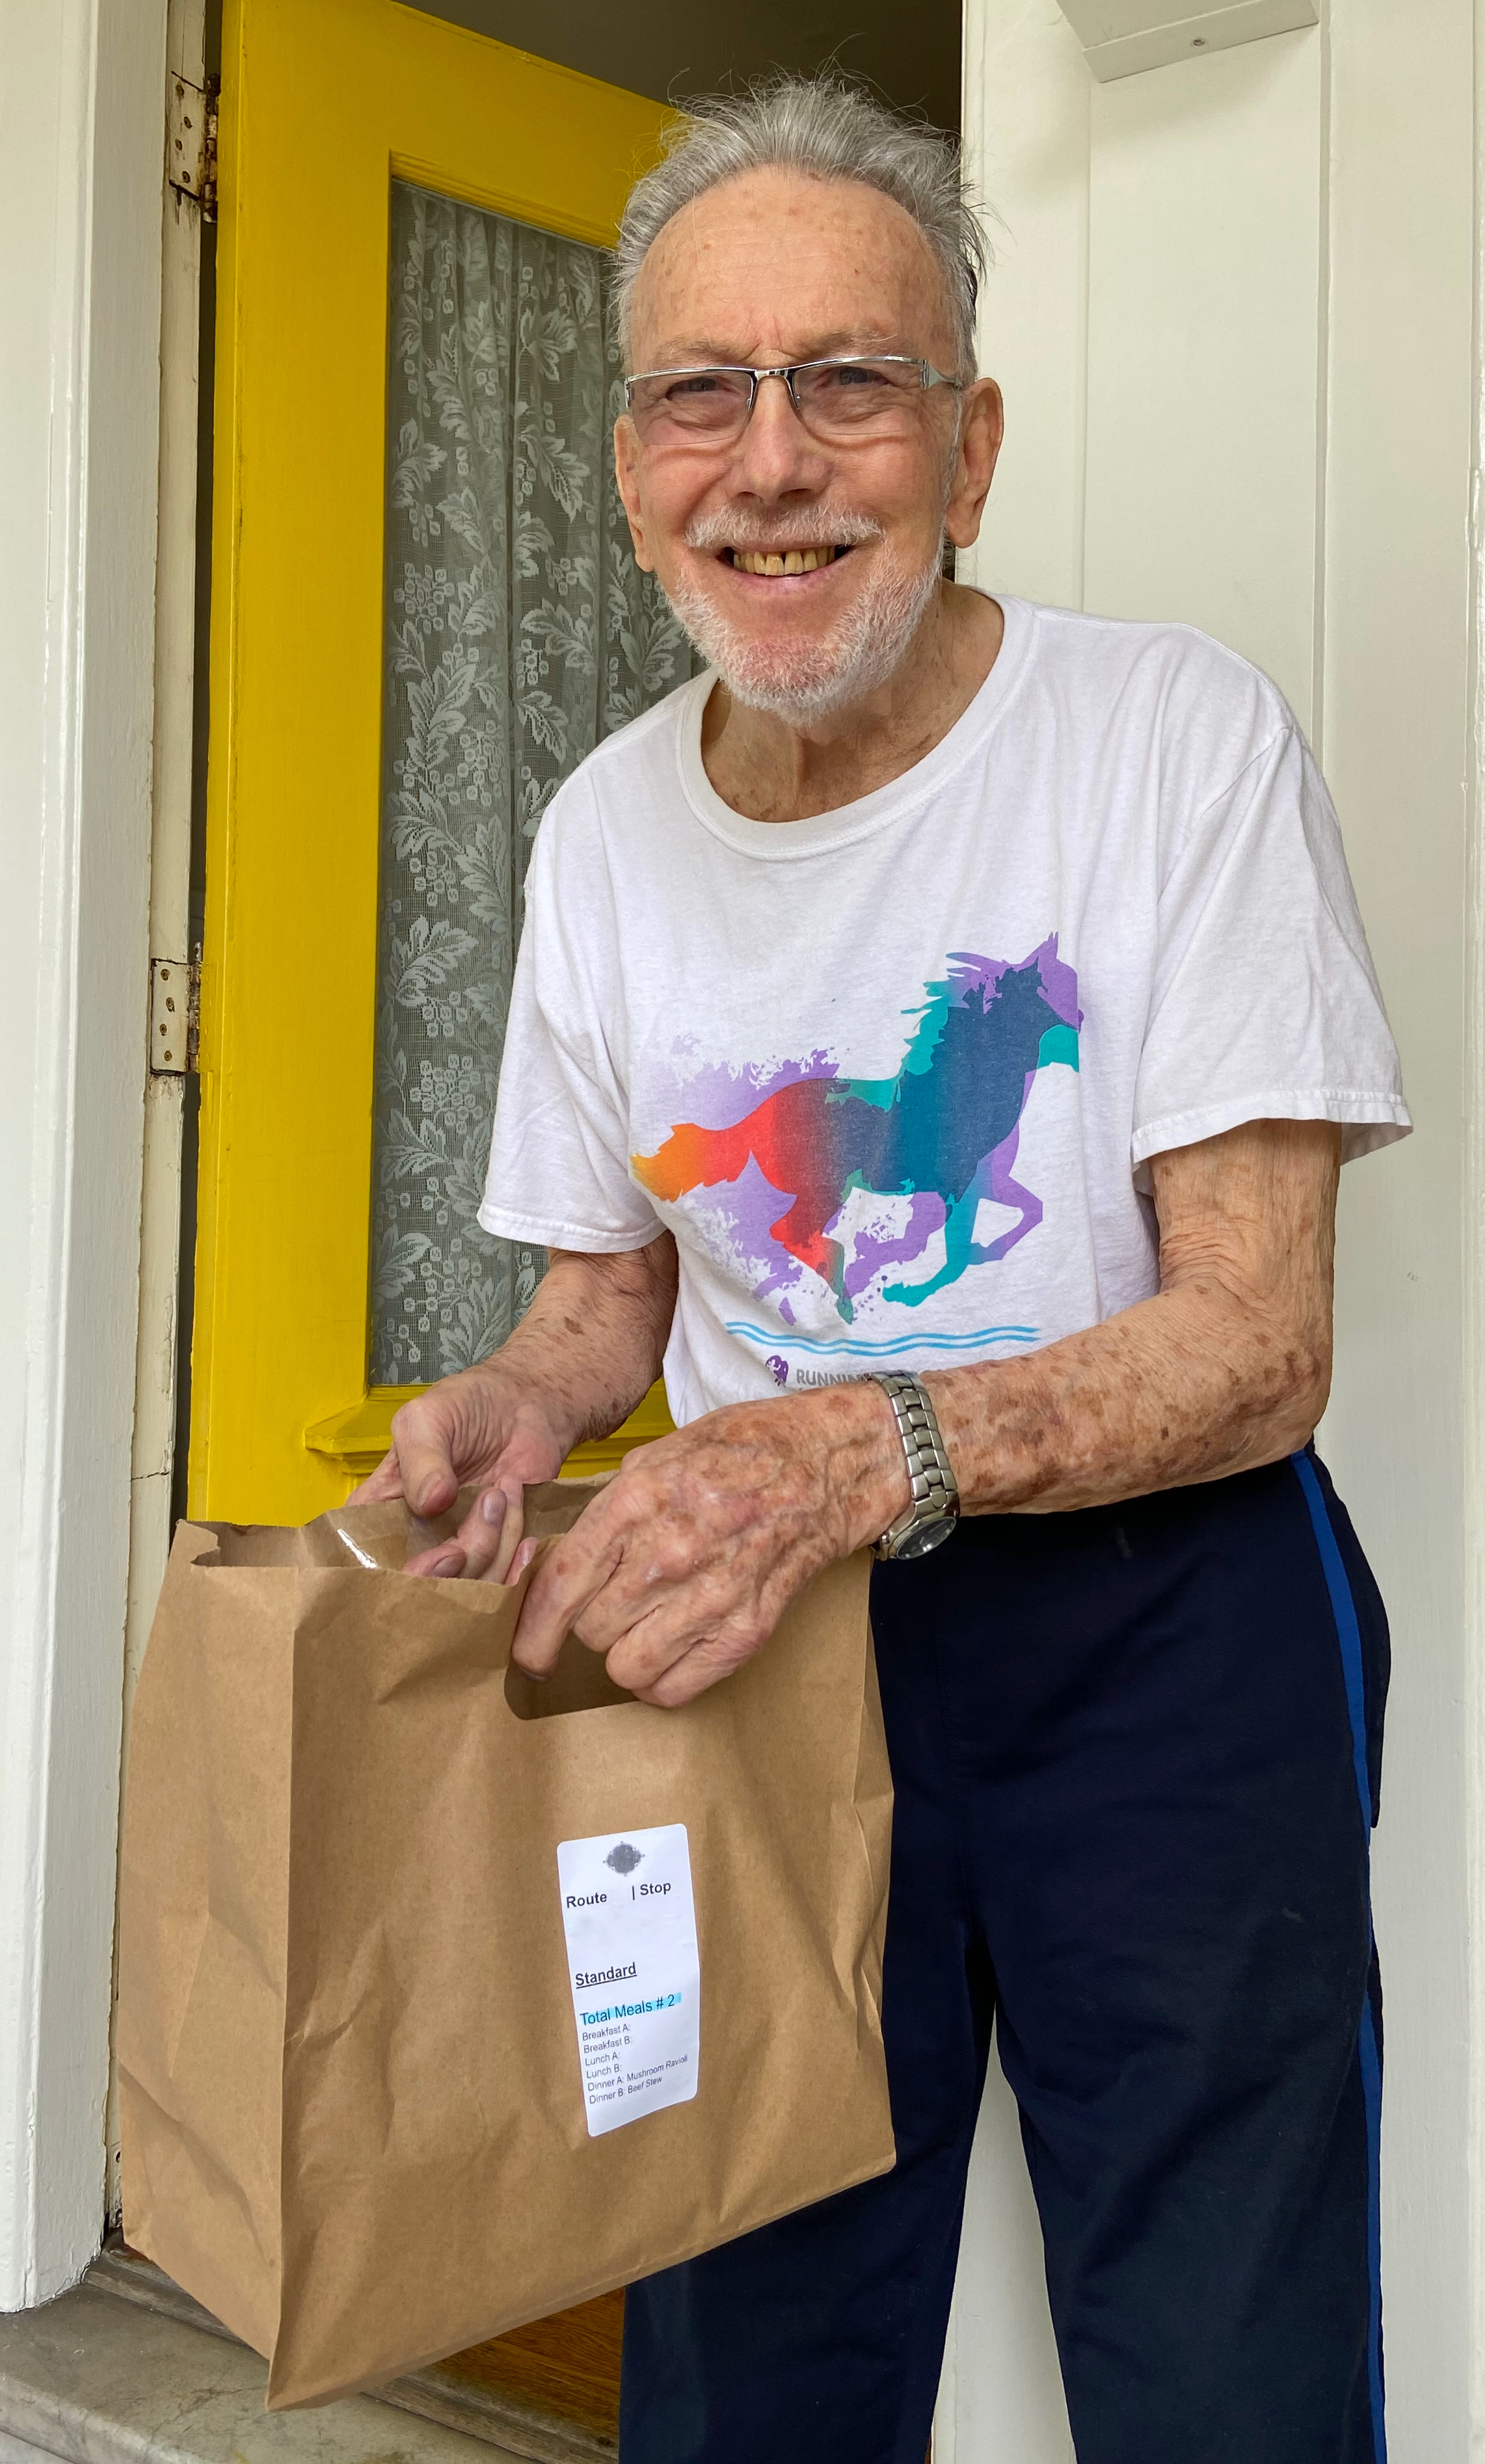 San Francisco Castro resident Tom with his delivery from Great Plates Delivered SF program